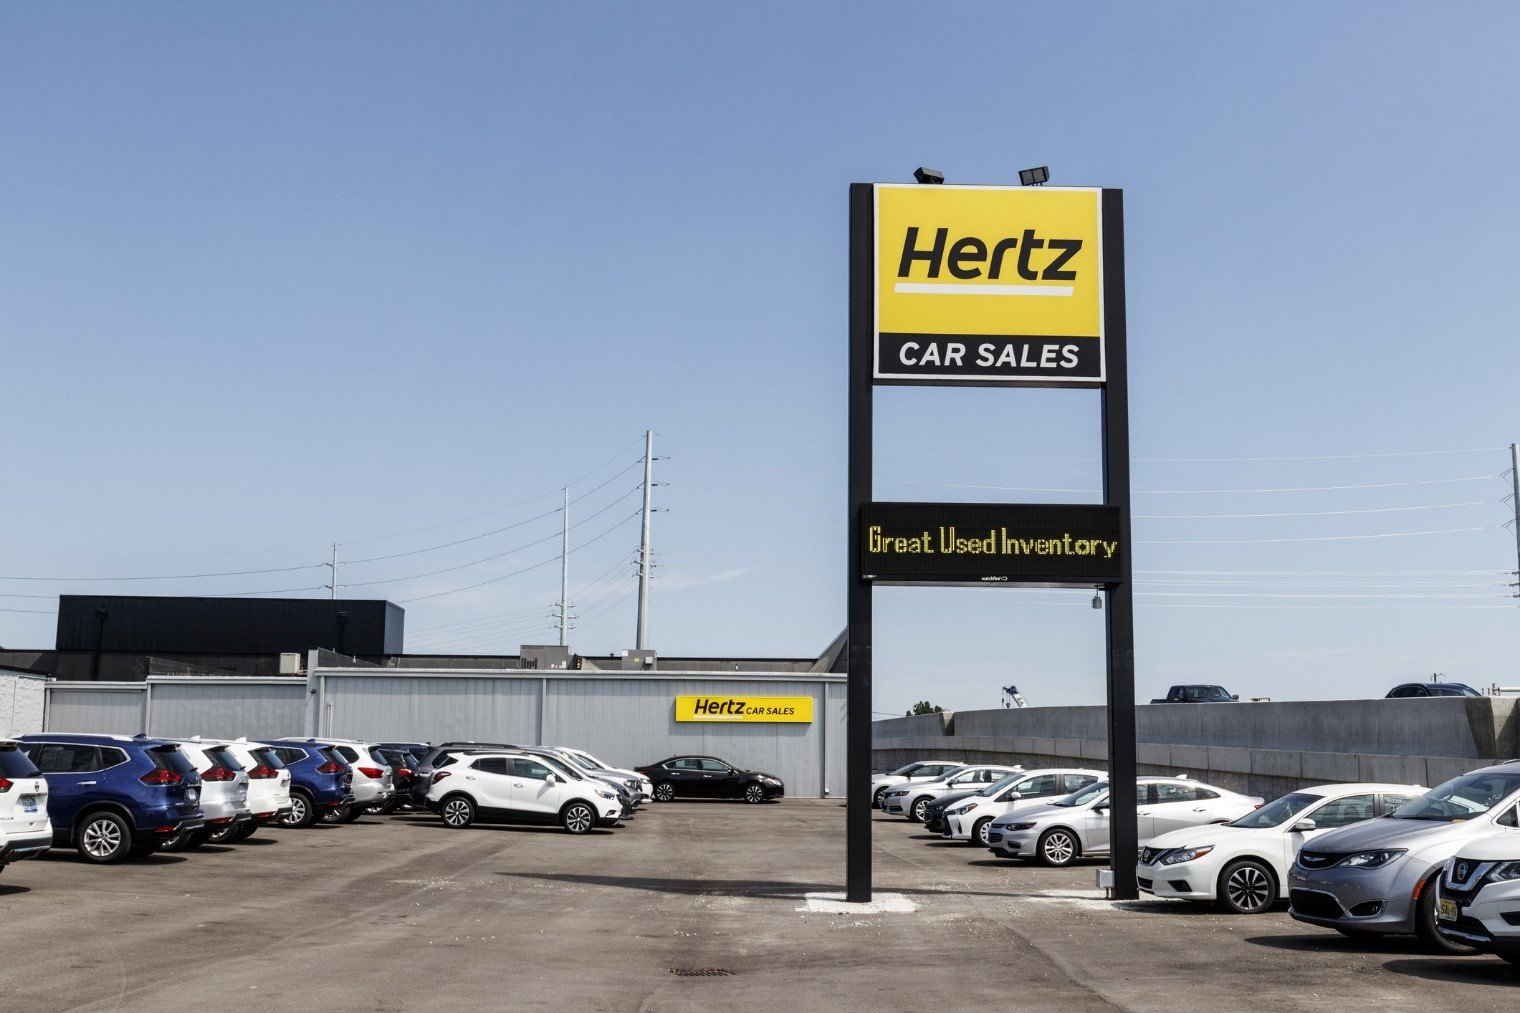 Hertz's Bankruptcy And Its Influence On The Car Industry-fig 3